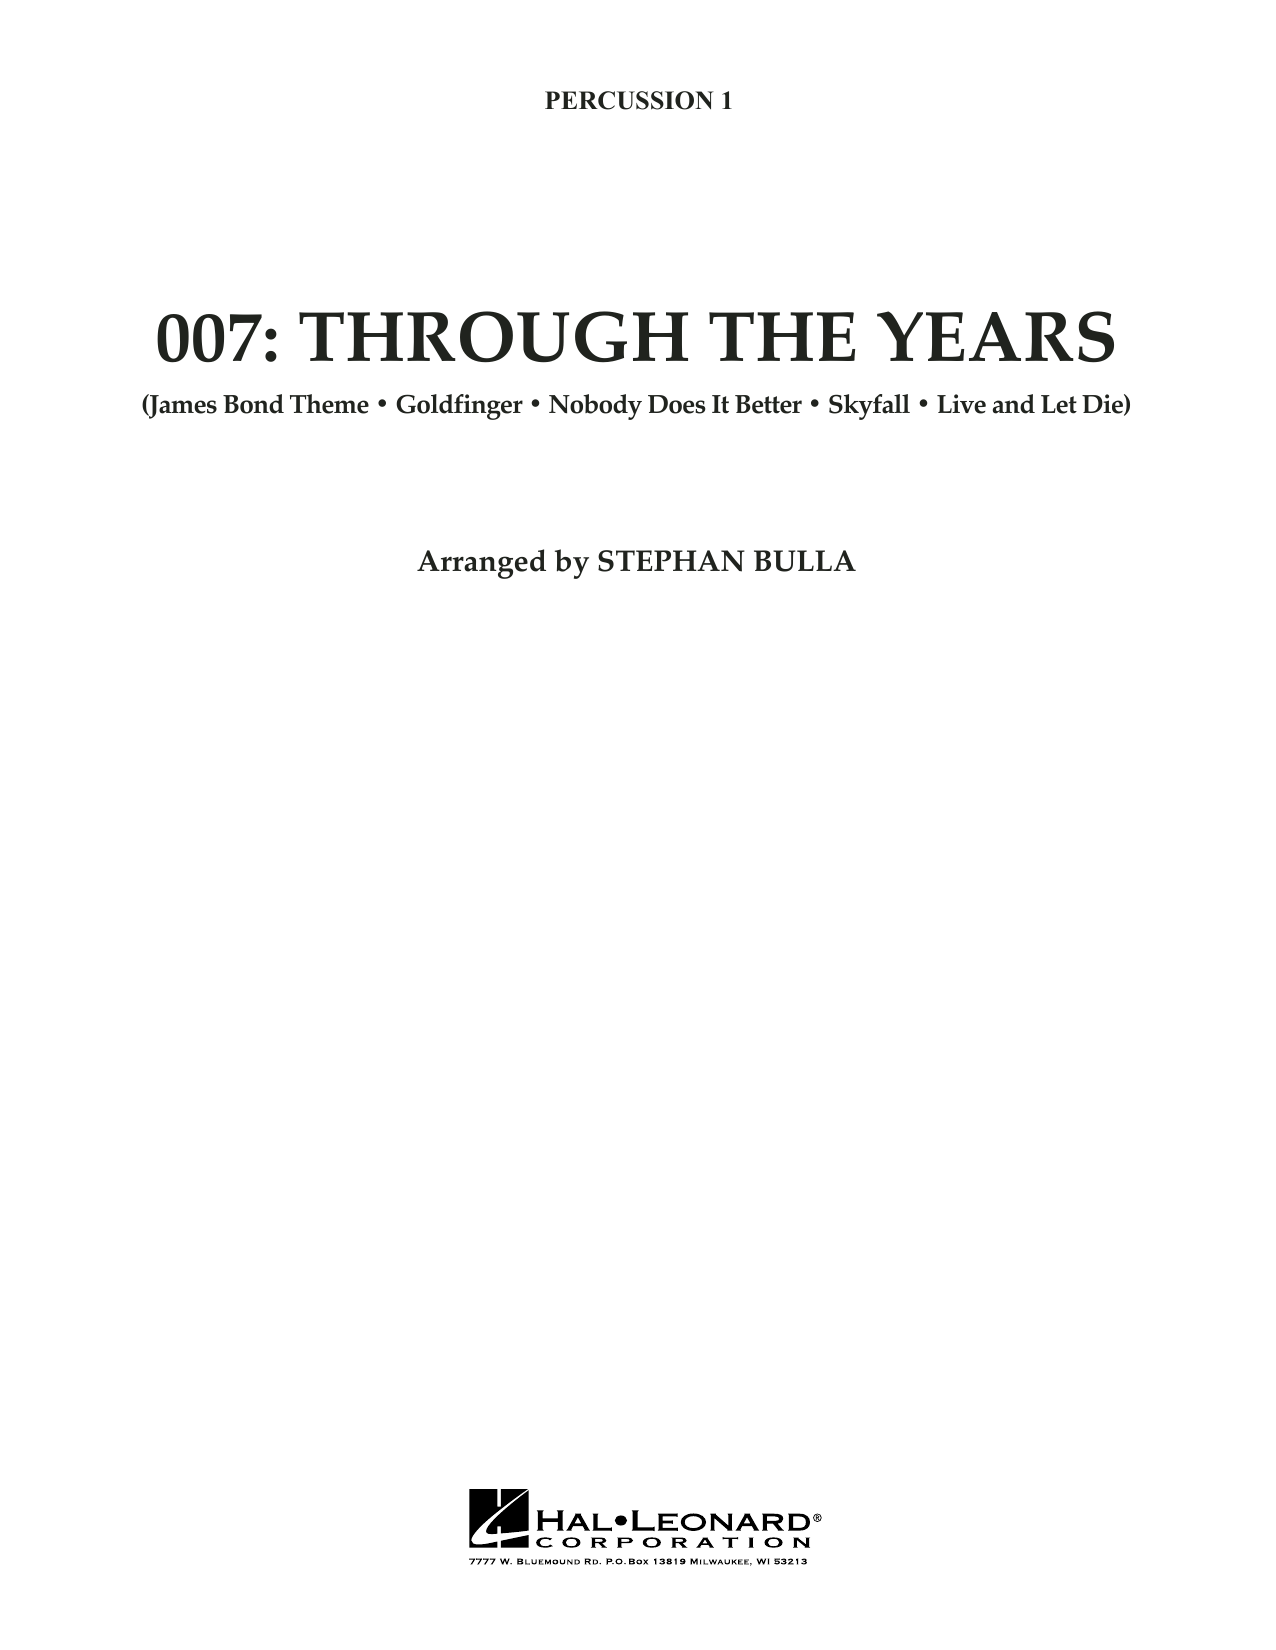 007: Through The Years - Percussion 1 (Orchestra)